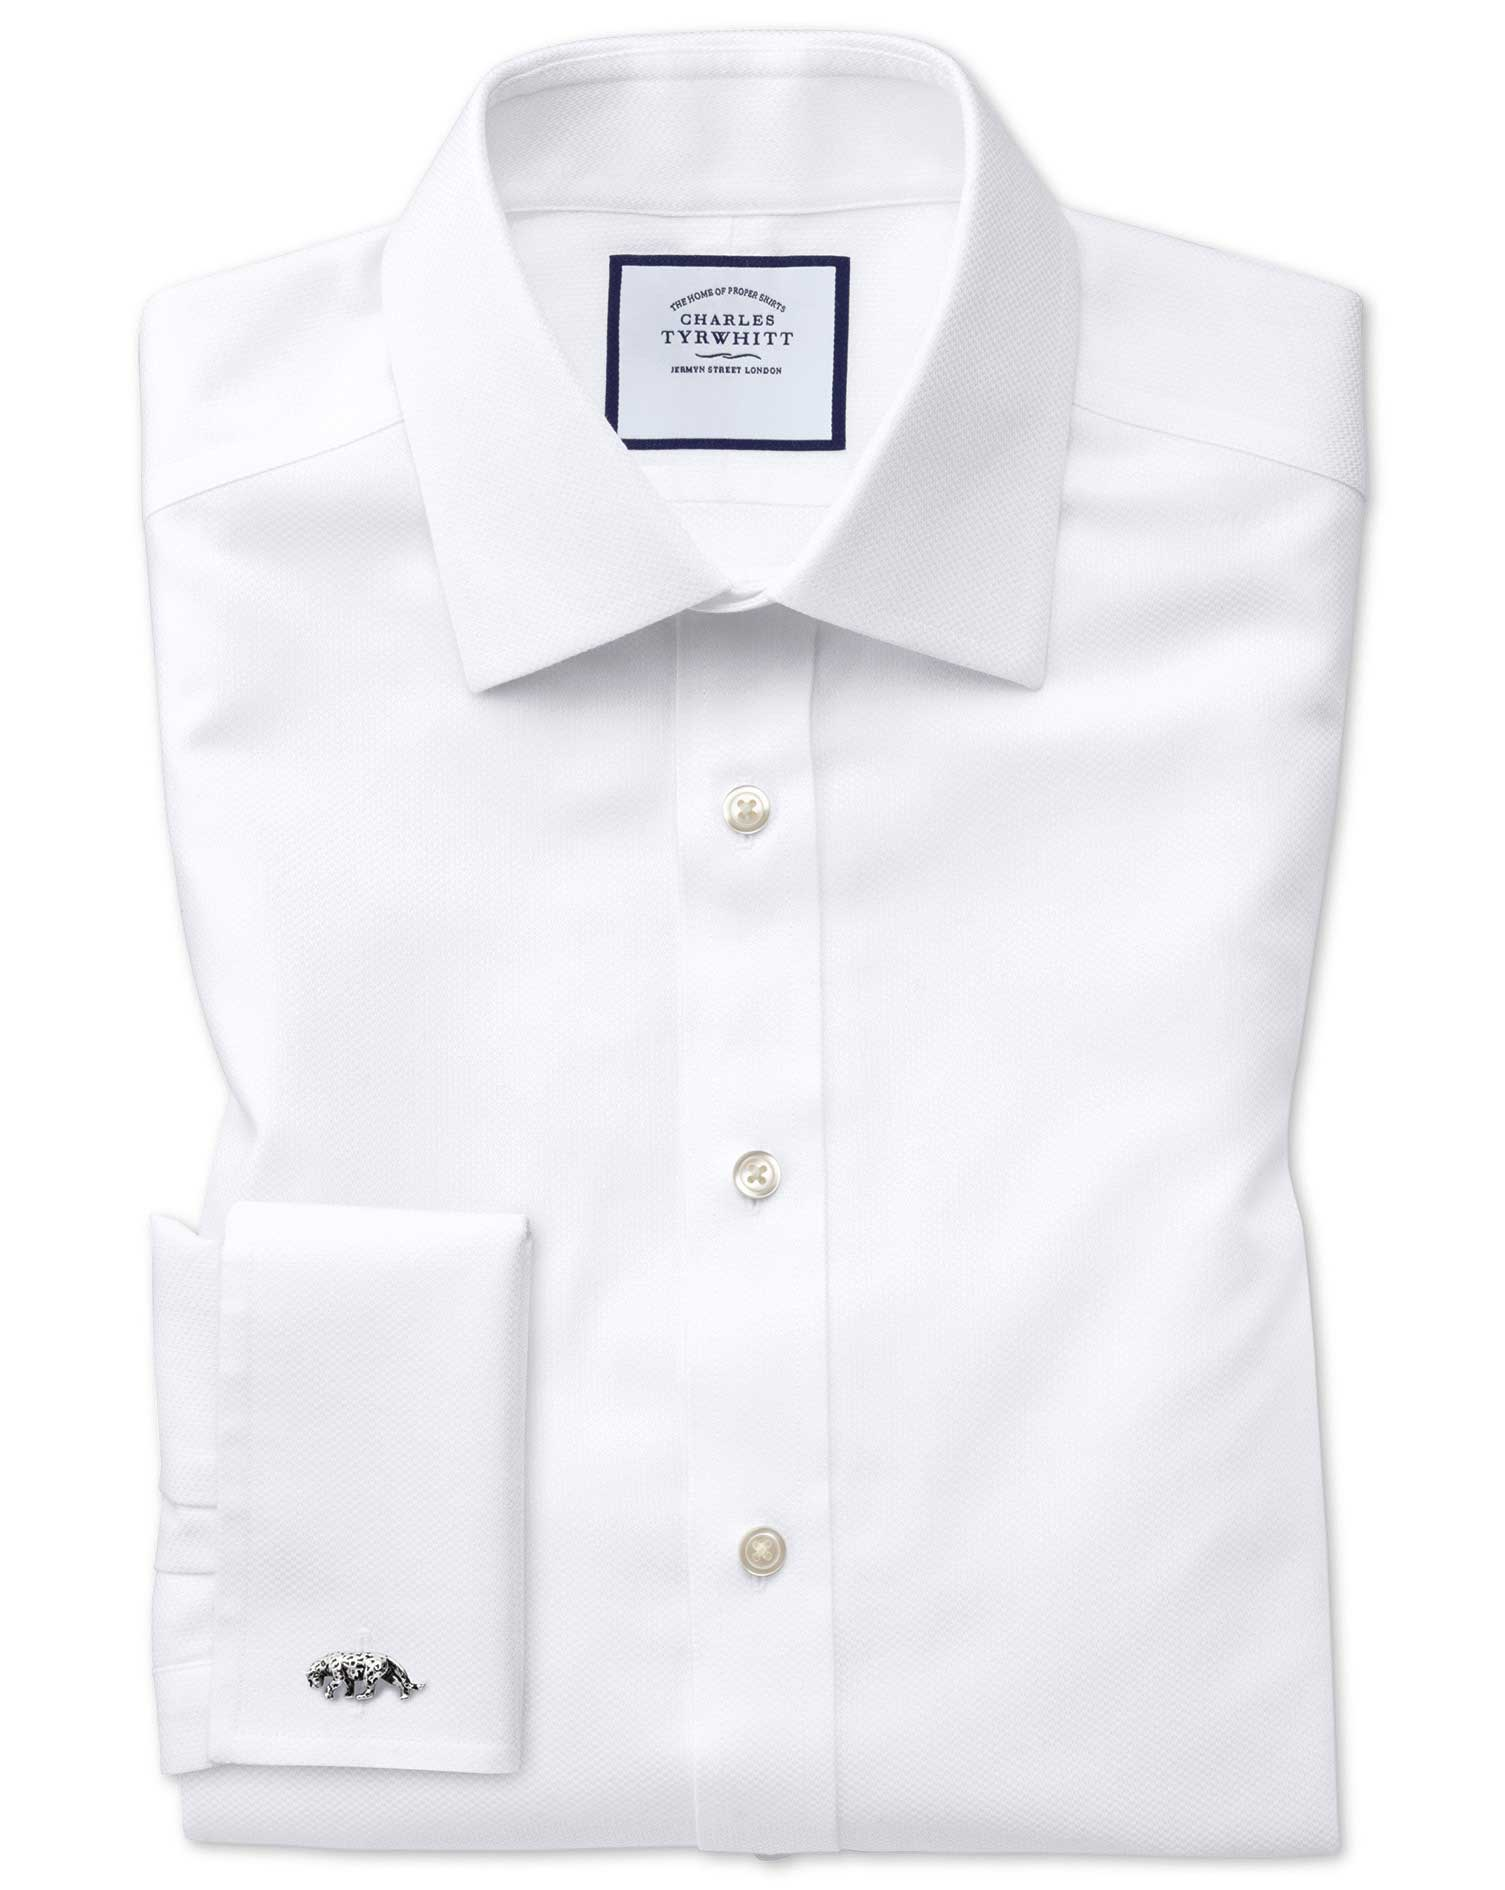 Slim Fit Non-Iron White Arrow Weave Cotton Formal Shirt Double Cuff Size 16/33 by Charles Tyrwhitt